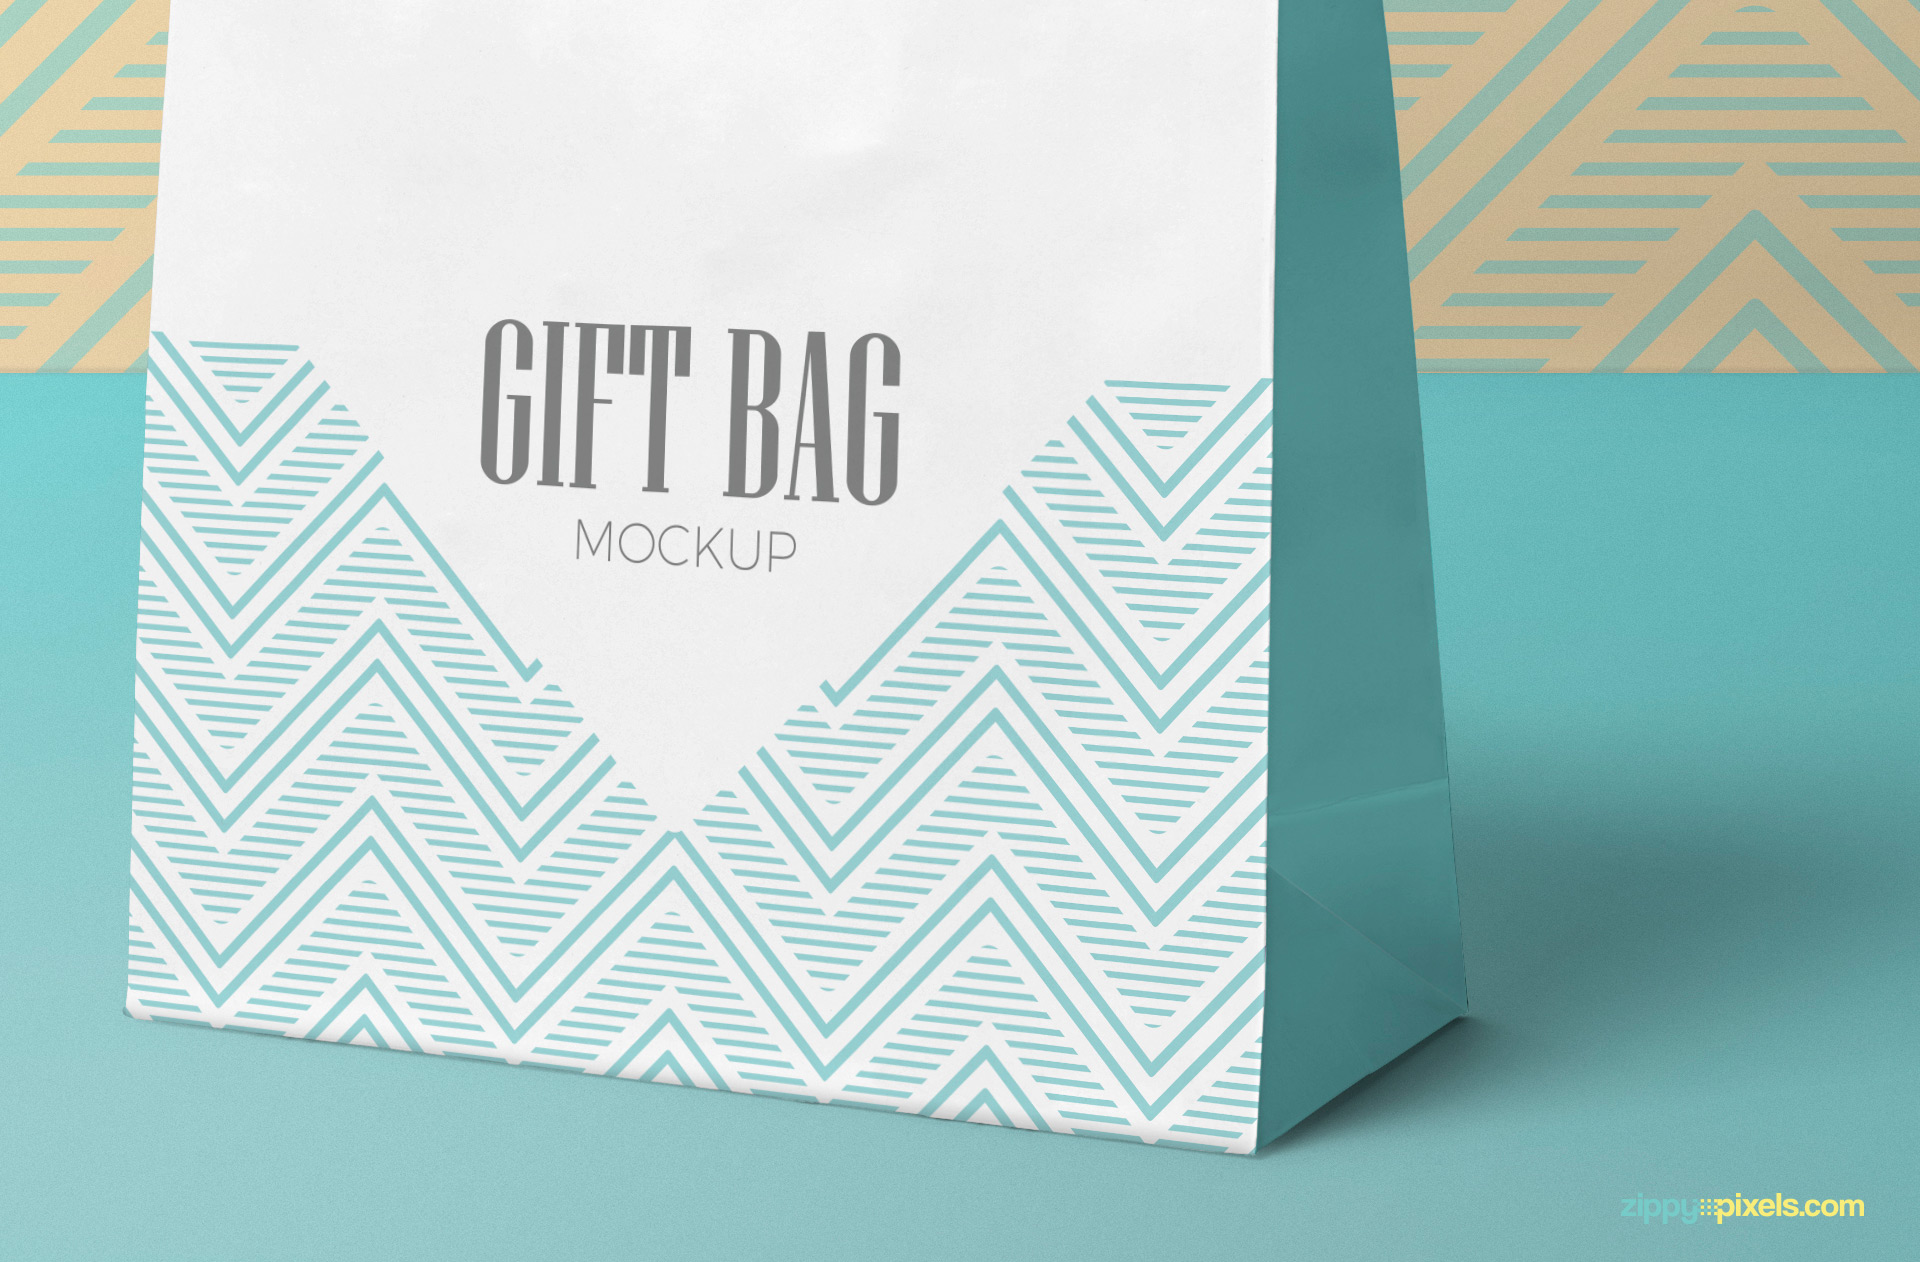 Gorgeous gift bag mockup in standing position.